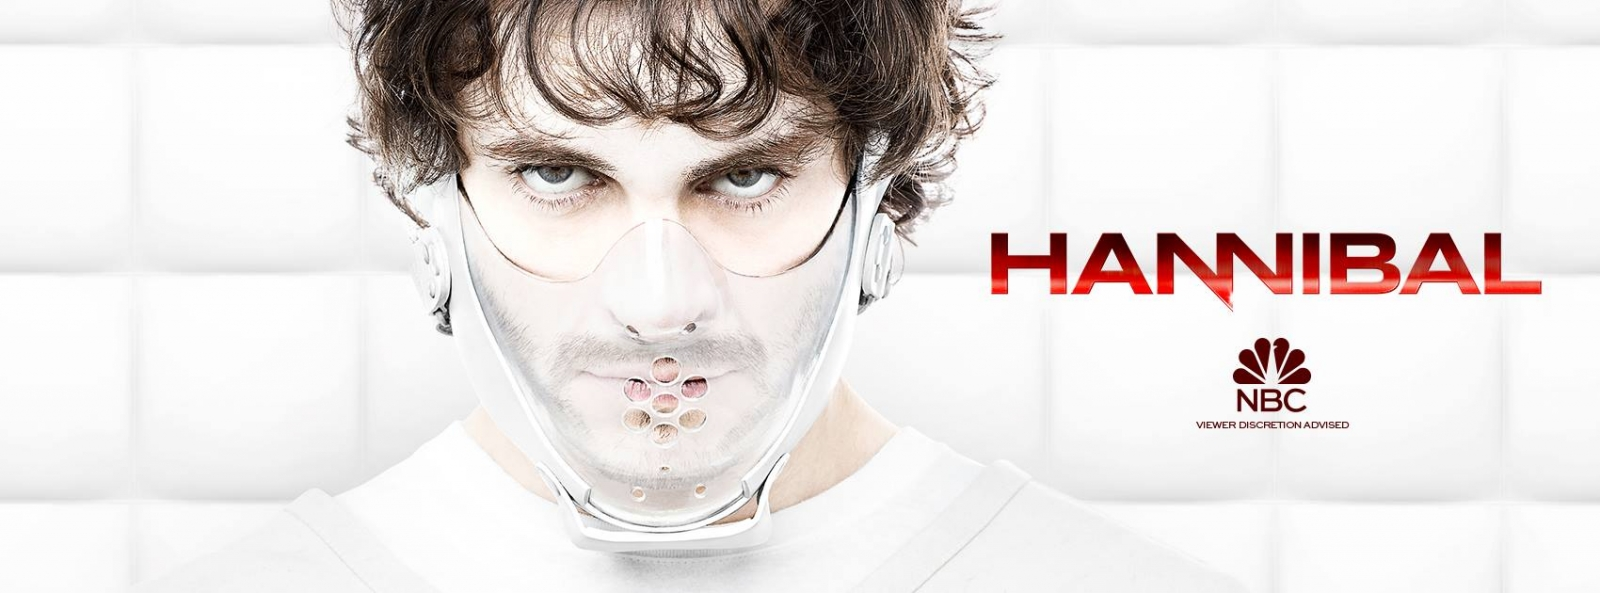 Hannibal Season 3 plot spoilers: Super weird episodes teased by Showrunner Bryan Fuller